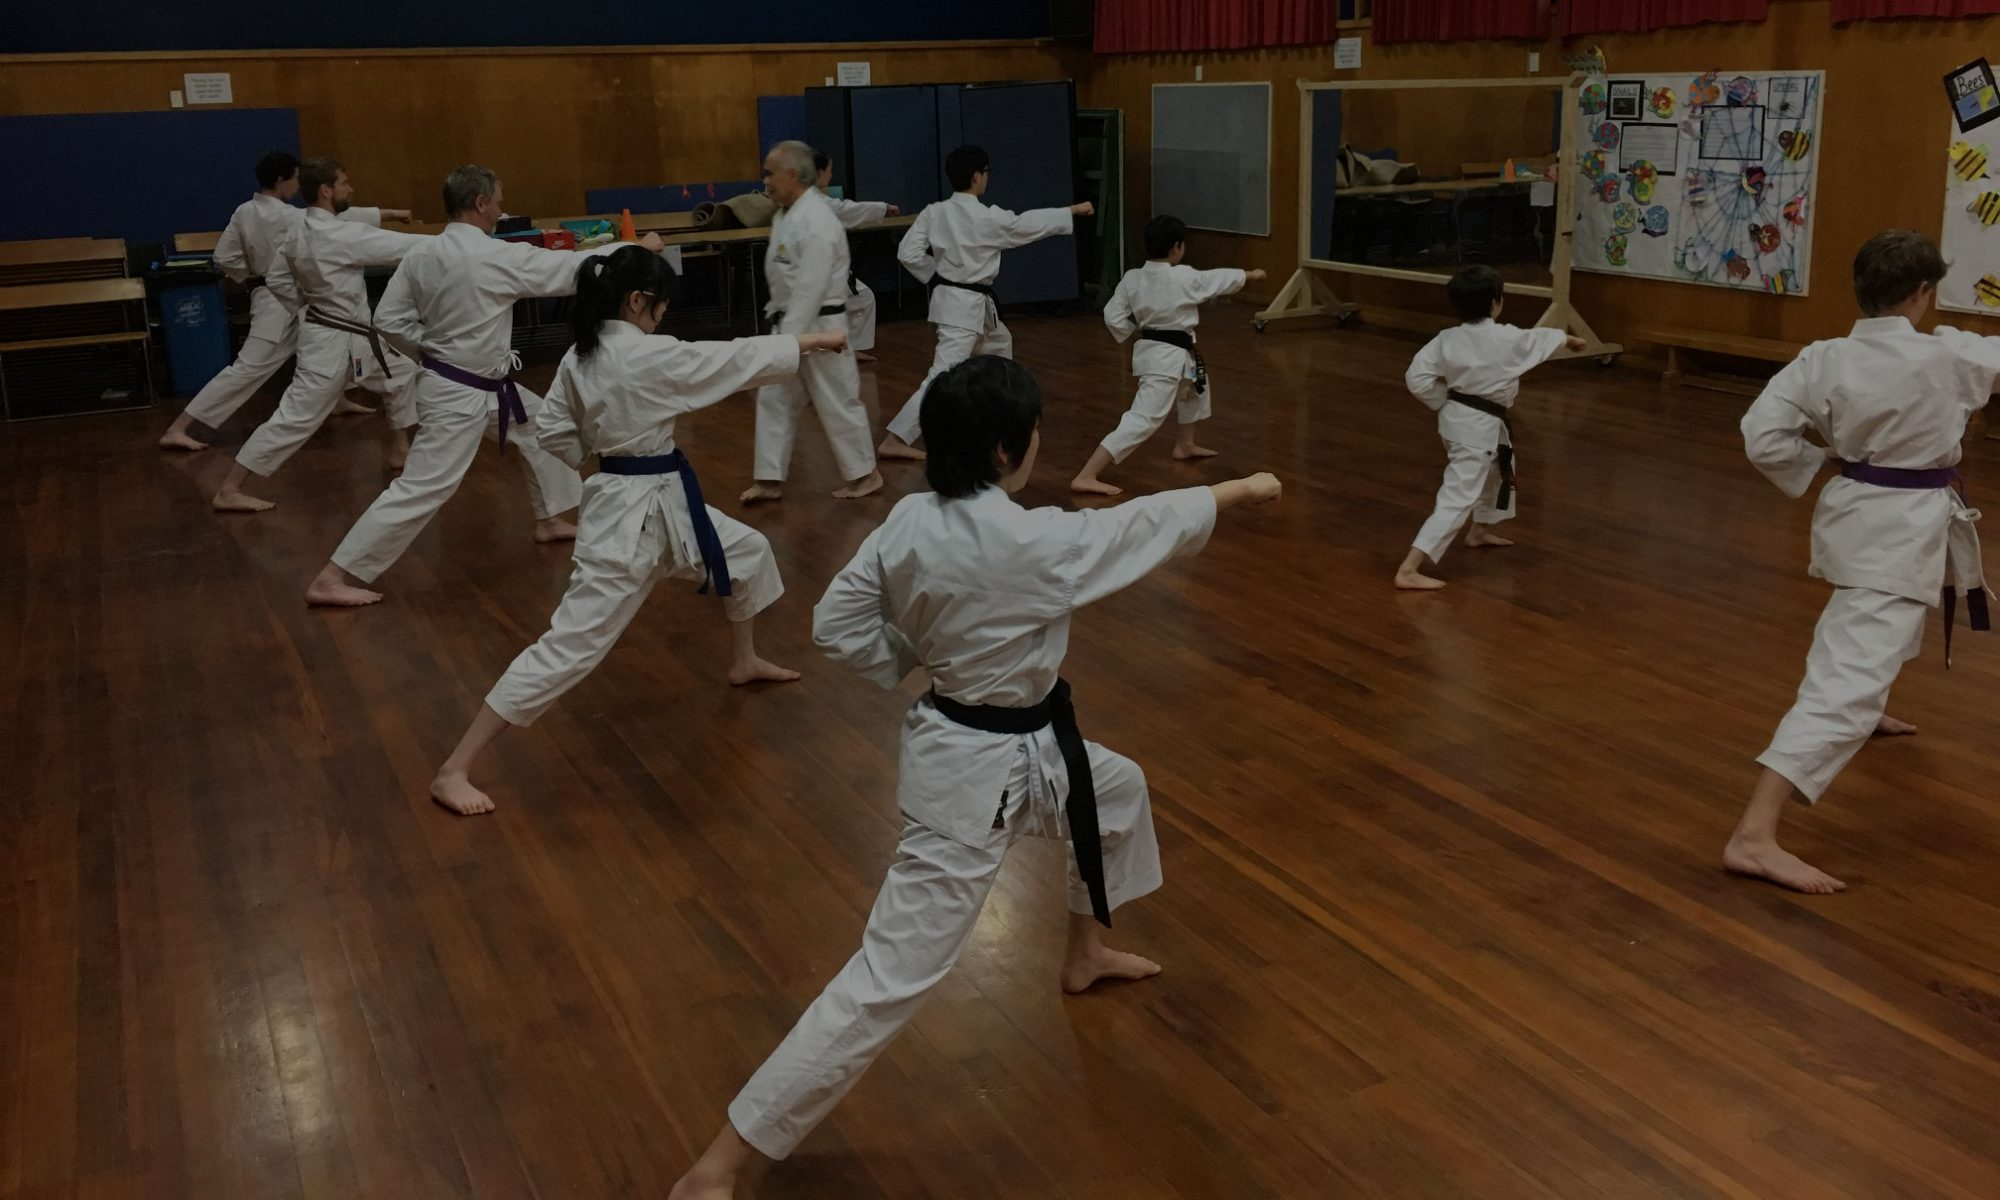 JKS Shotokan Karate